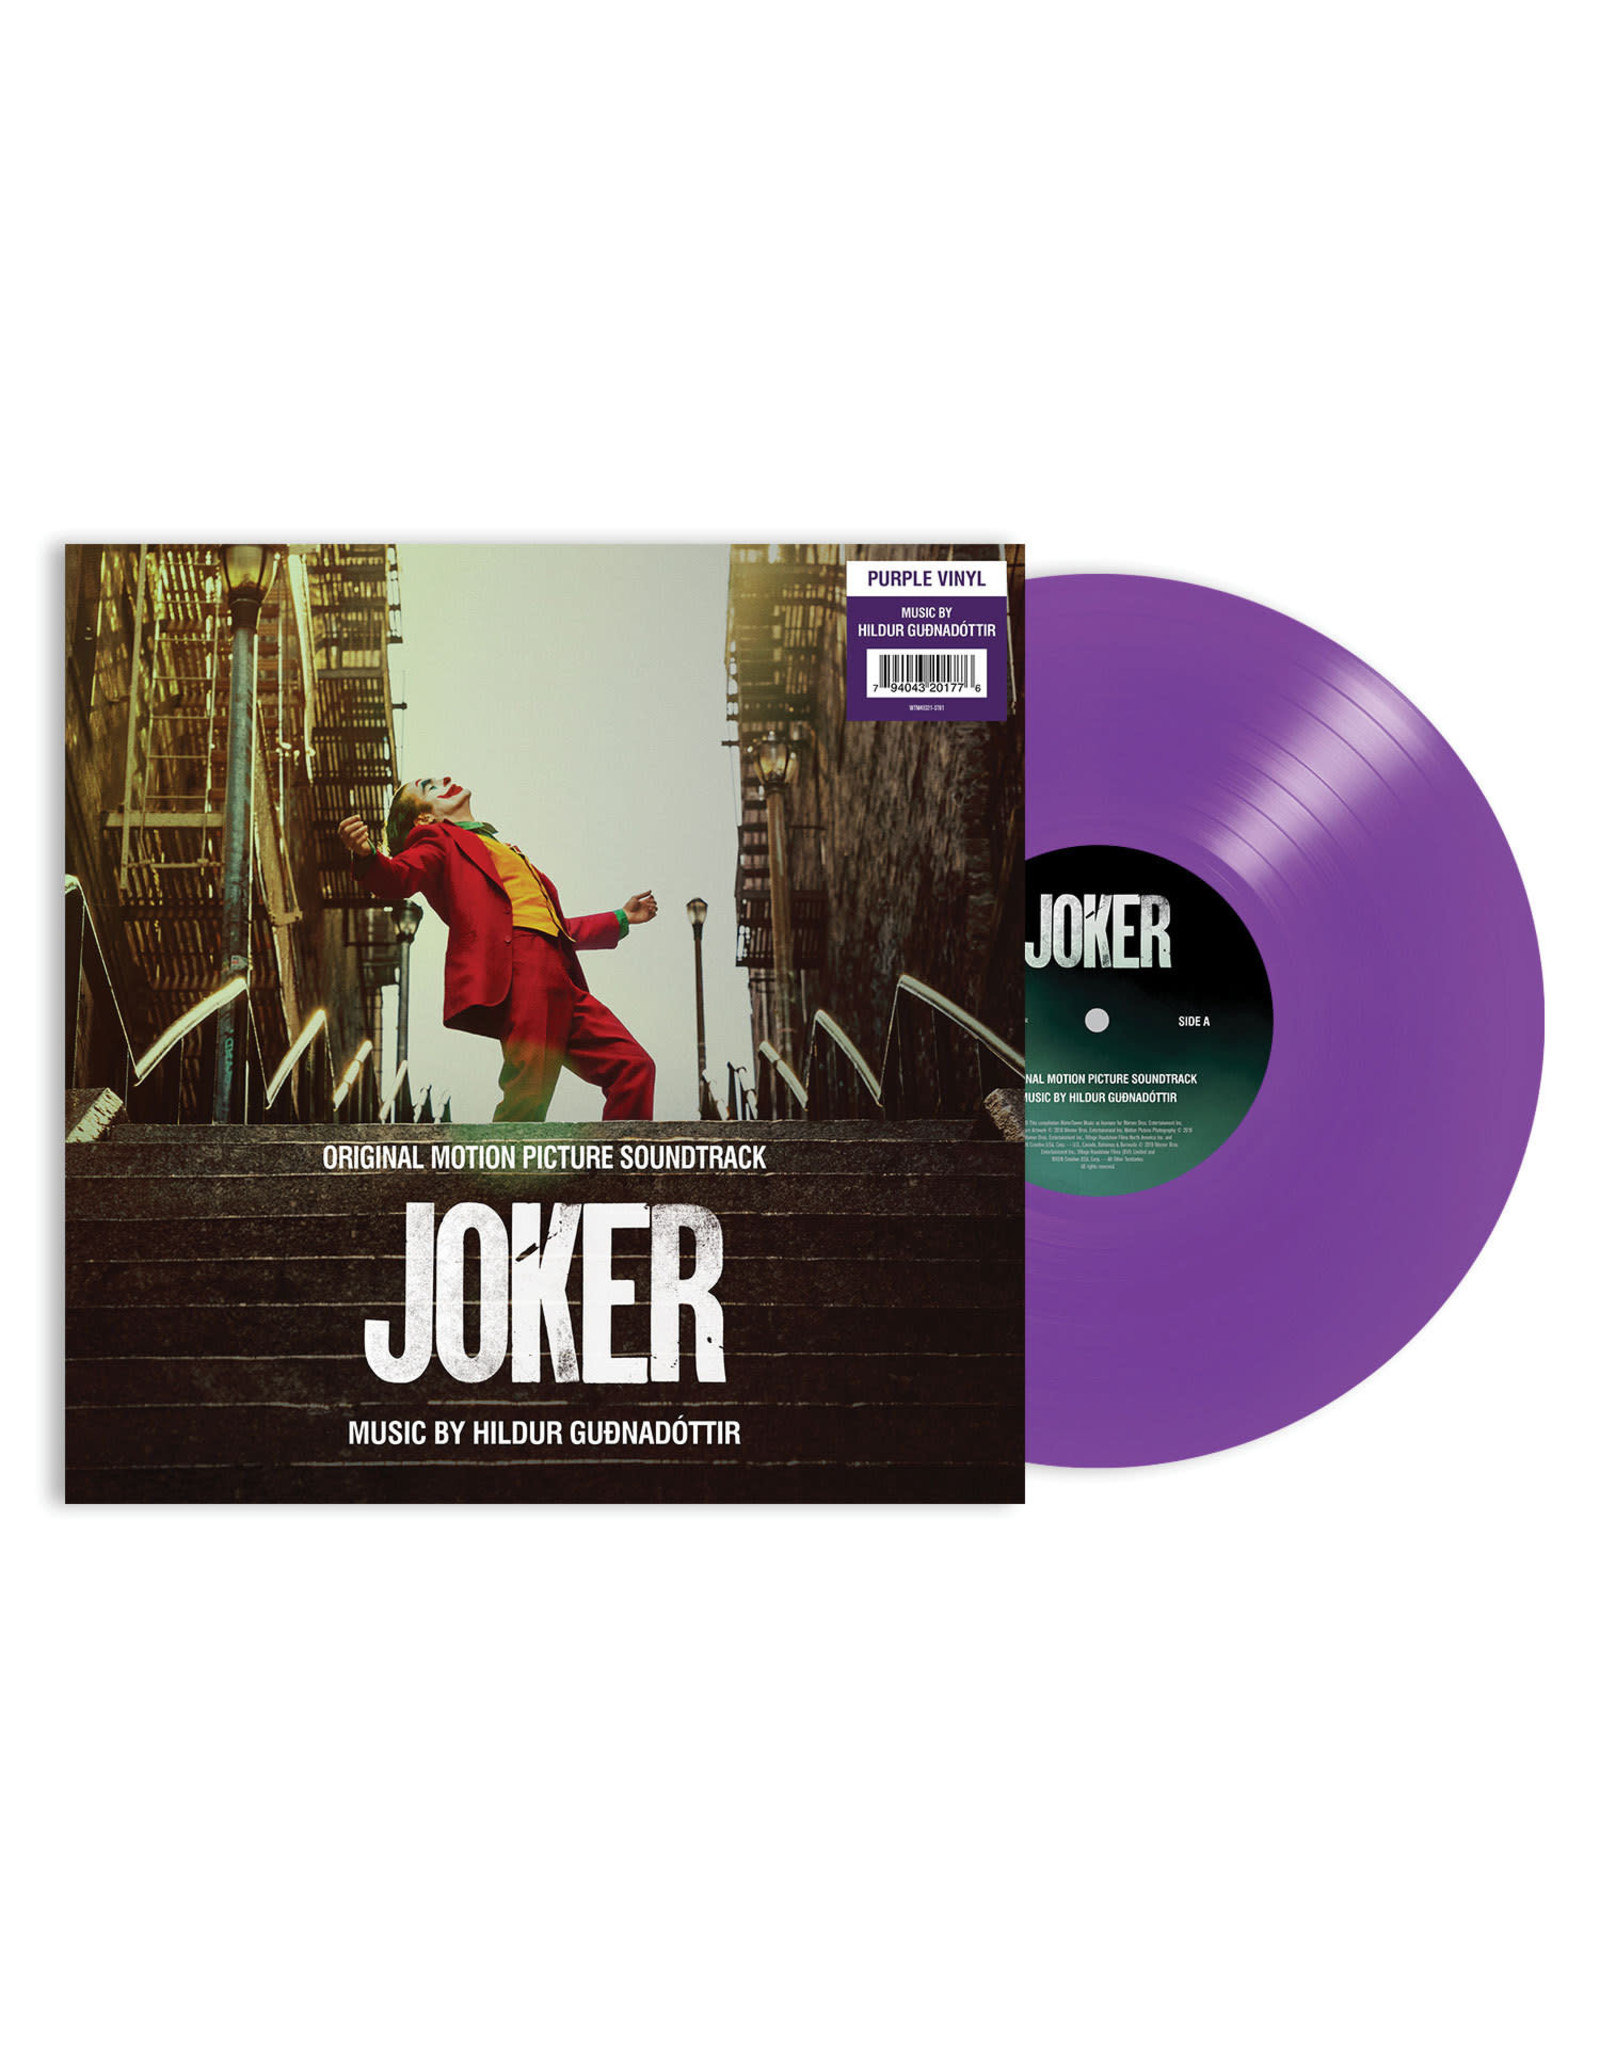 Hildur Gudnadottir - Joker (Original Motion Picture Soundtrack) [Purple Vinyl]